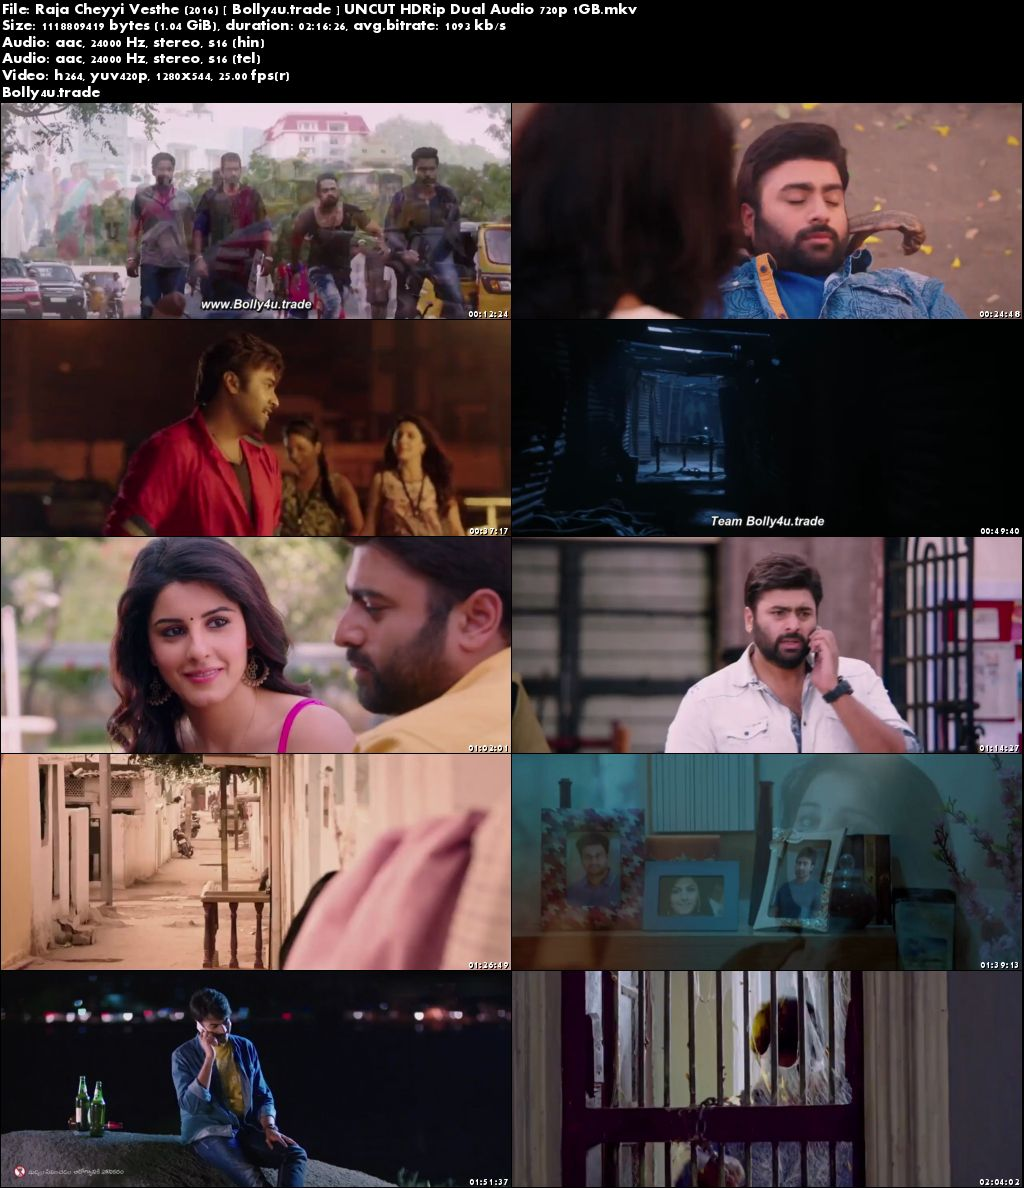 Raja Cheyyi Vesthe 2016 HDRip 1GB UNCUT Hindi Dual Audio 720p Download